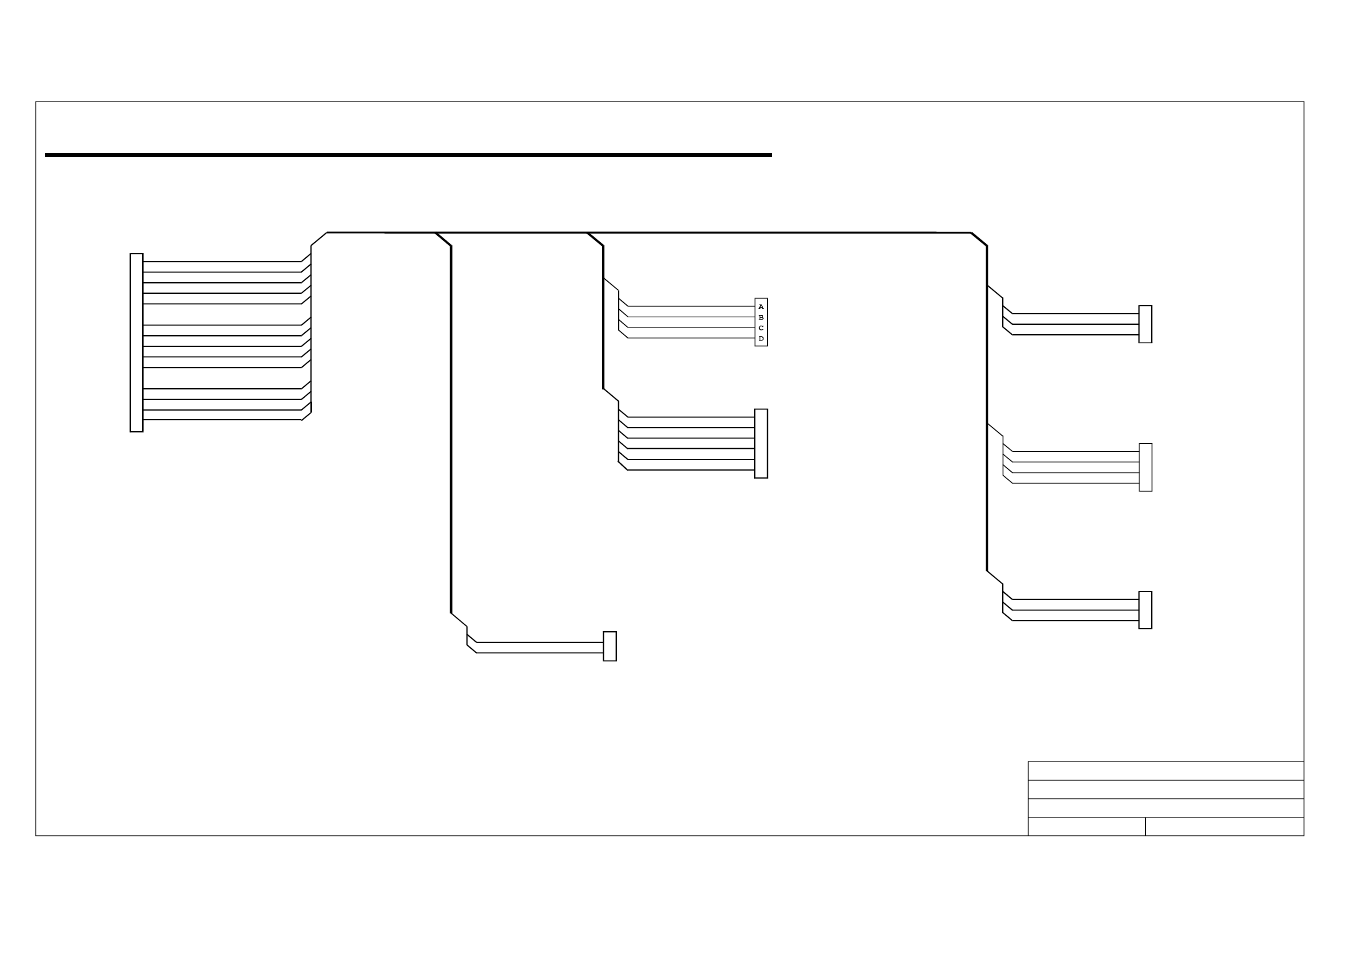 appendix a wiring diagrams | haltech f9a user manual | page 98 / 99